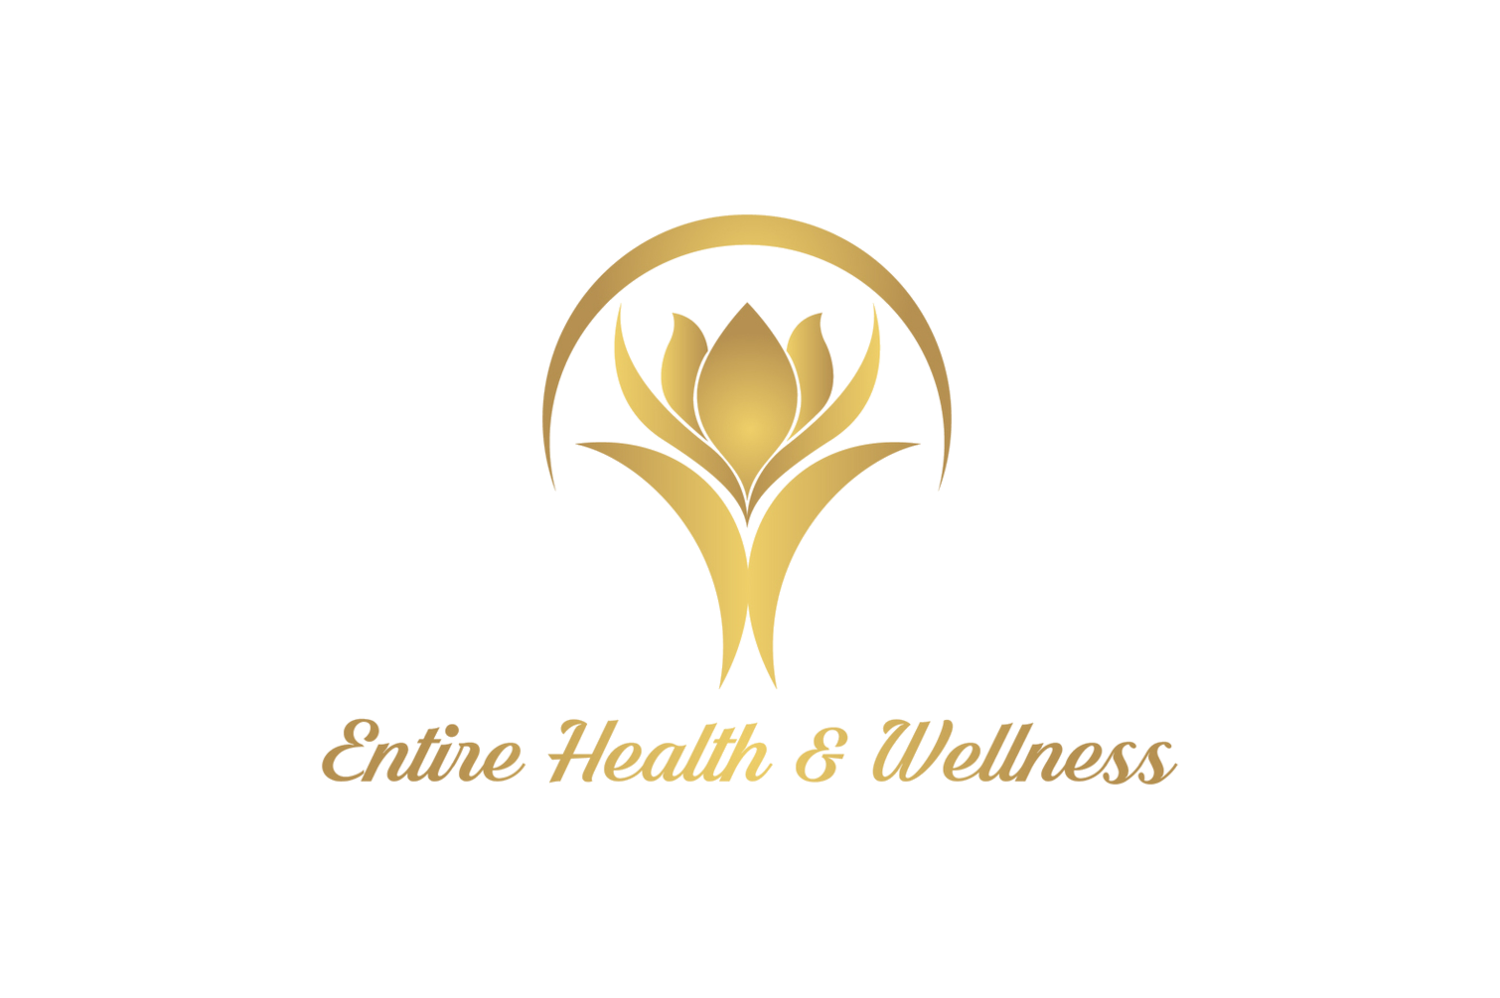 Entire Health and wellness